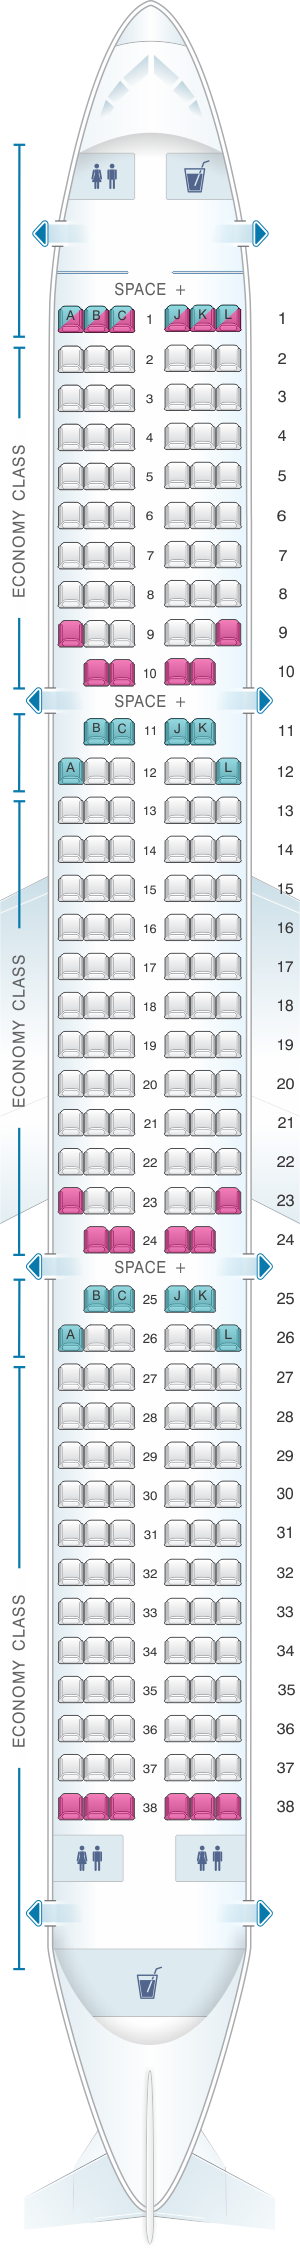 Seat Map Latam Airlines Airbus A321 Latam Airlines Jet